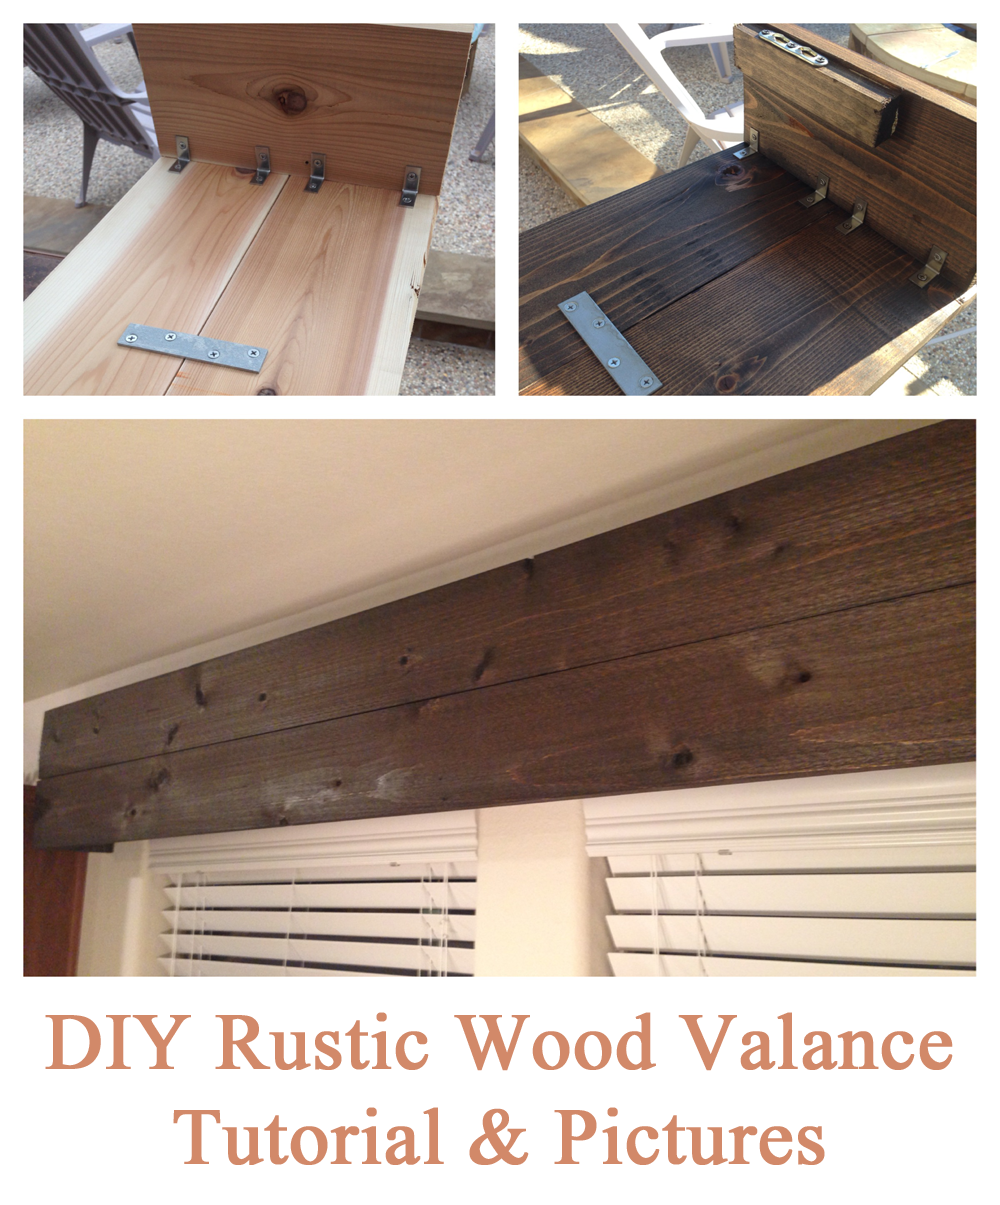 Easy DIY Tutorial For Creating A Rustic Wood Valance (the